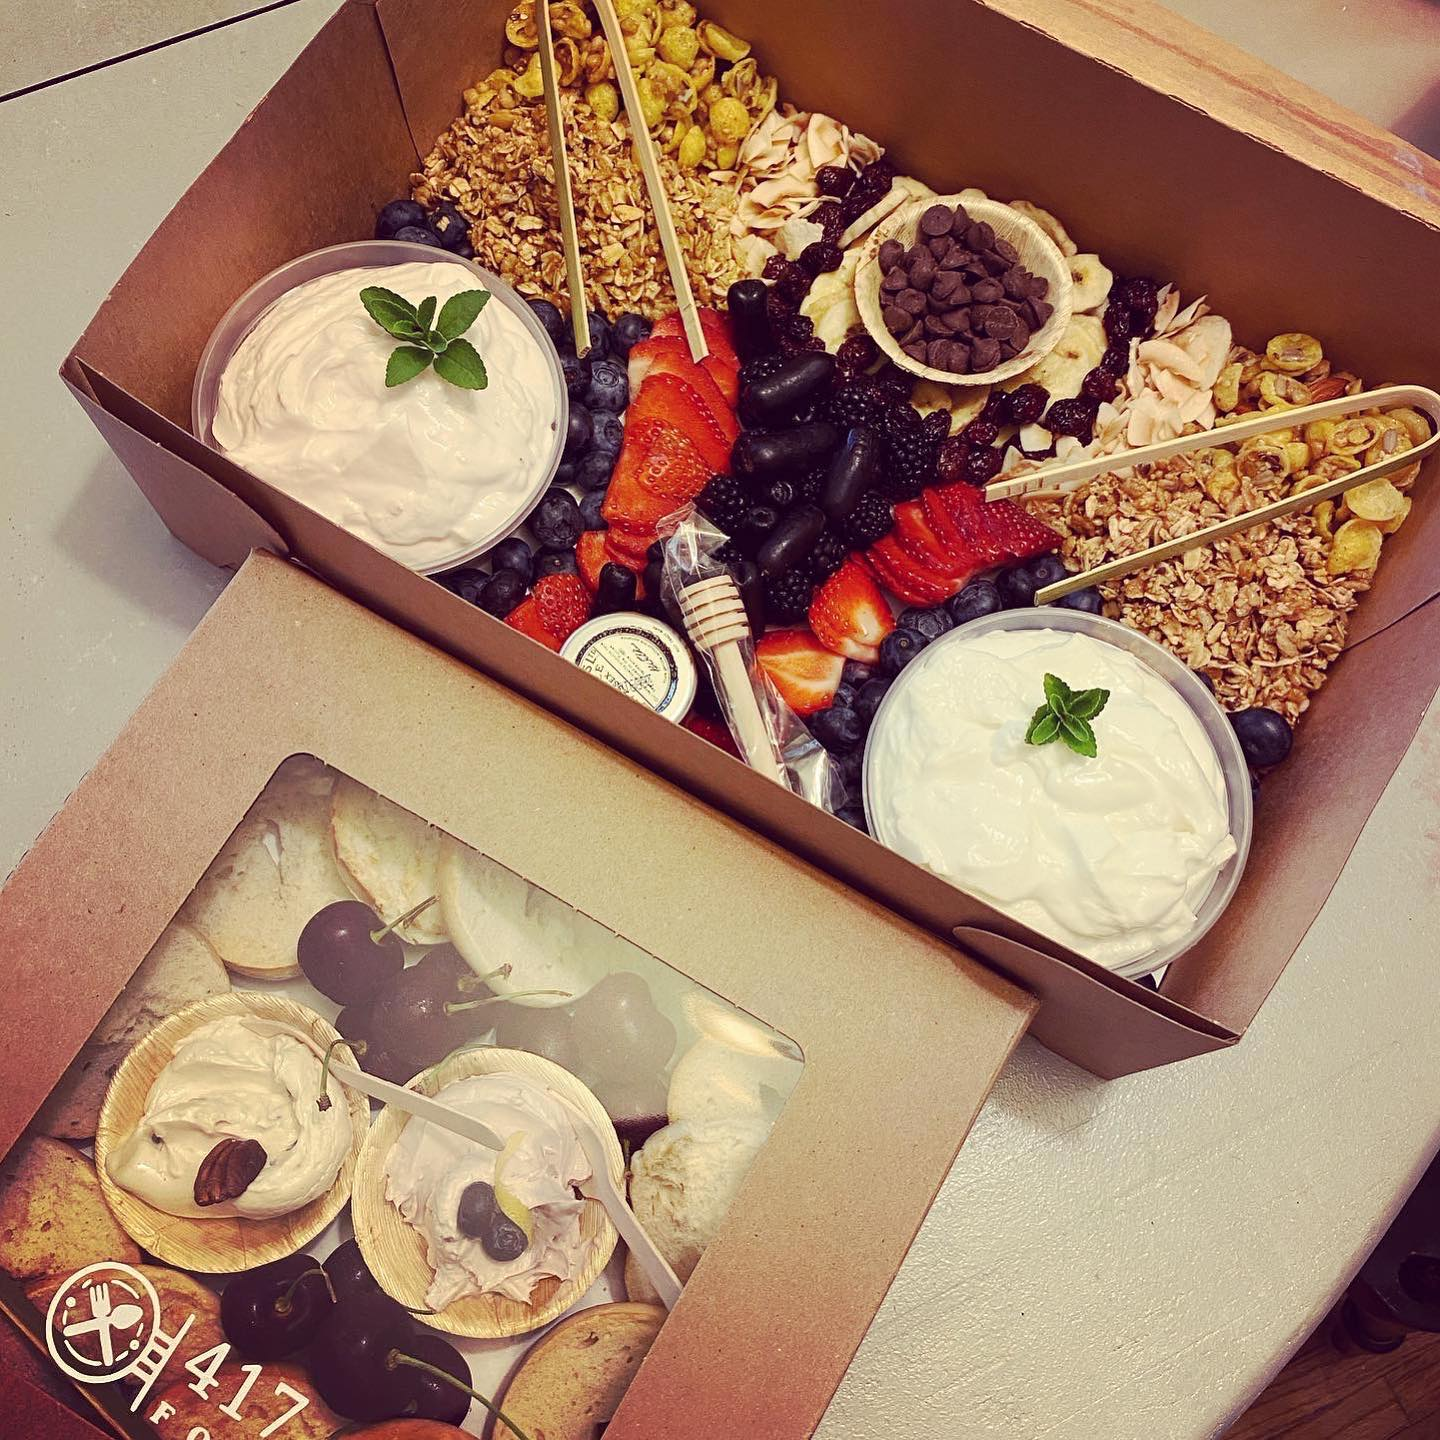 yogurt board with granola, assorted fruits and nuts in a box